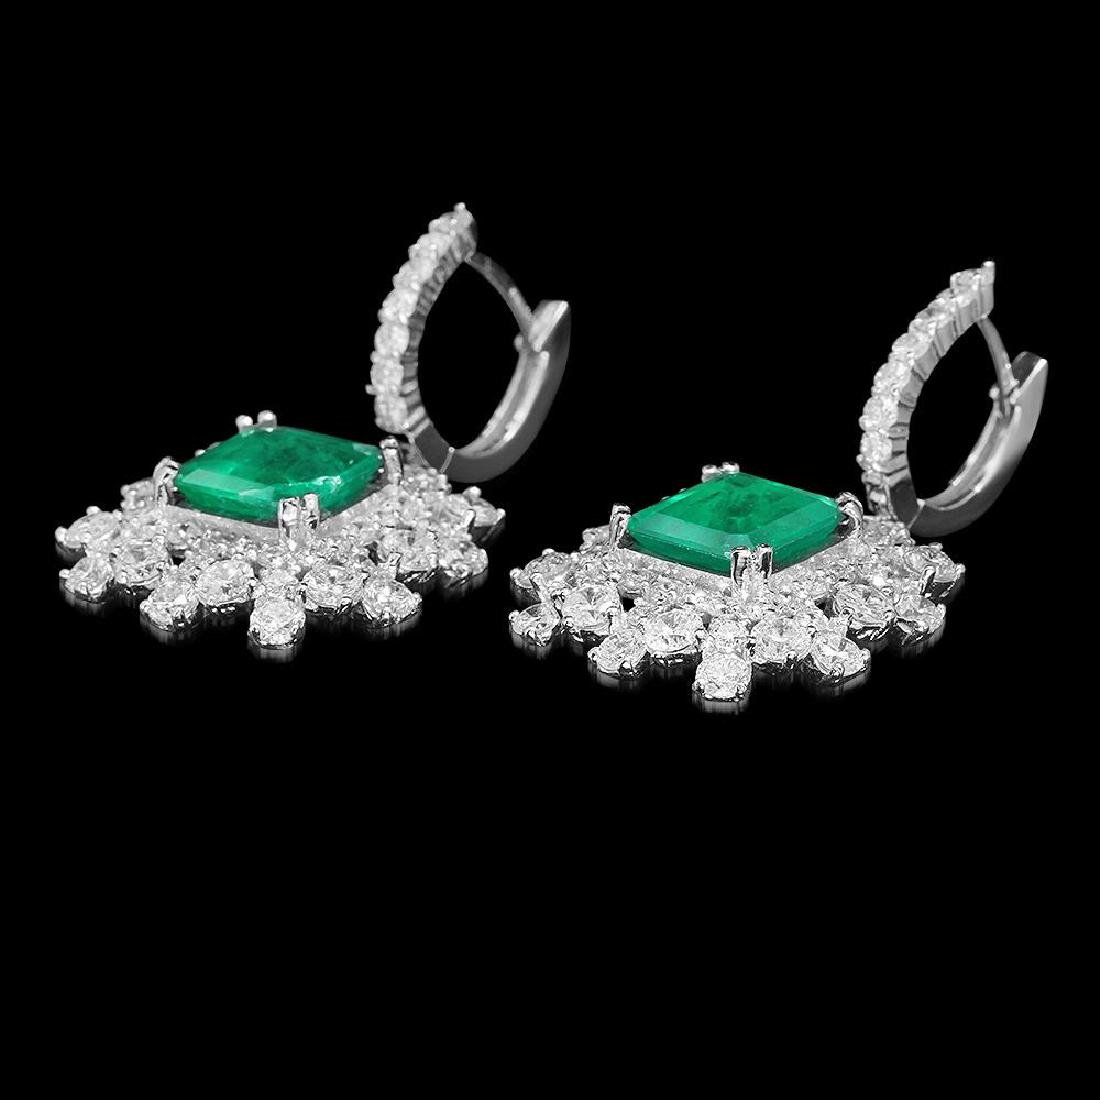 14K Gold 5.68ct Emerald 5.75ct Diamond Earrings - 2